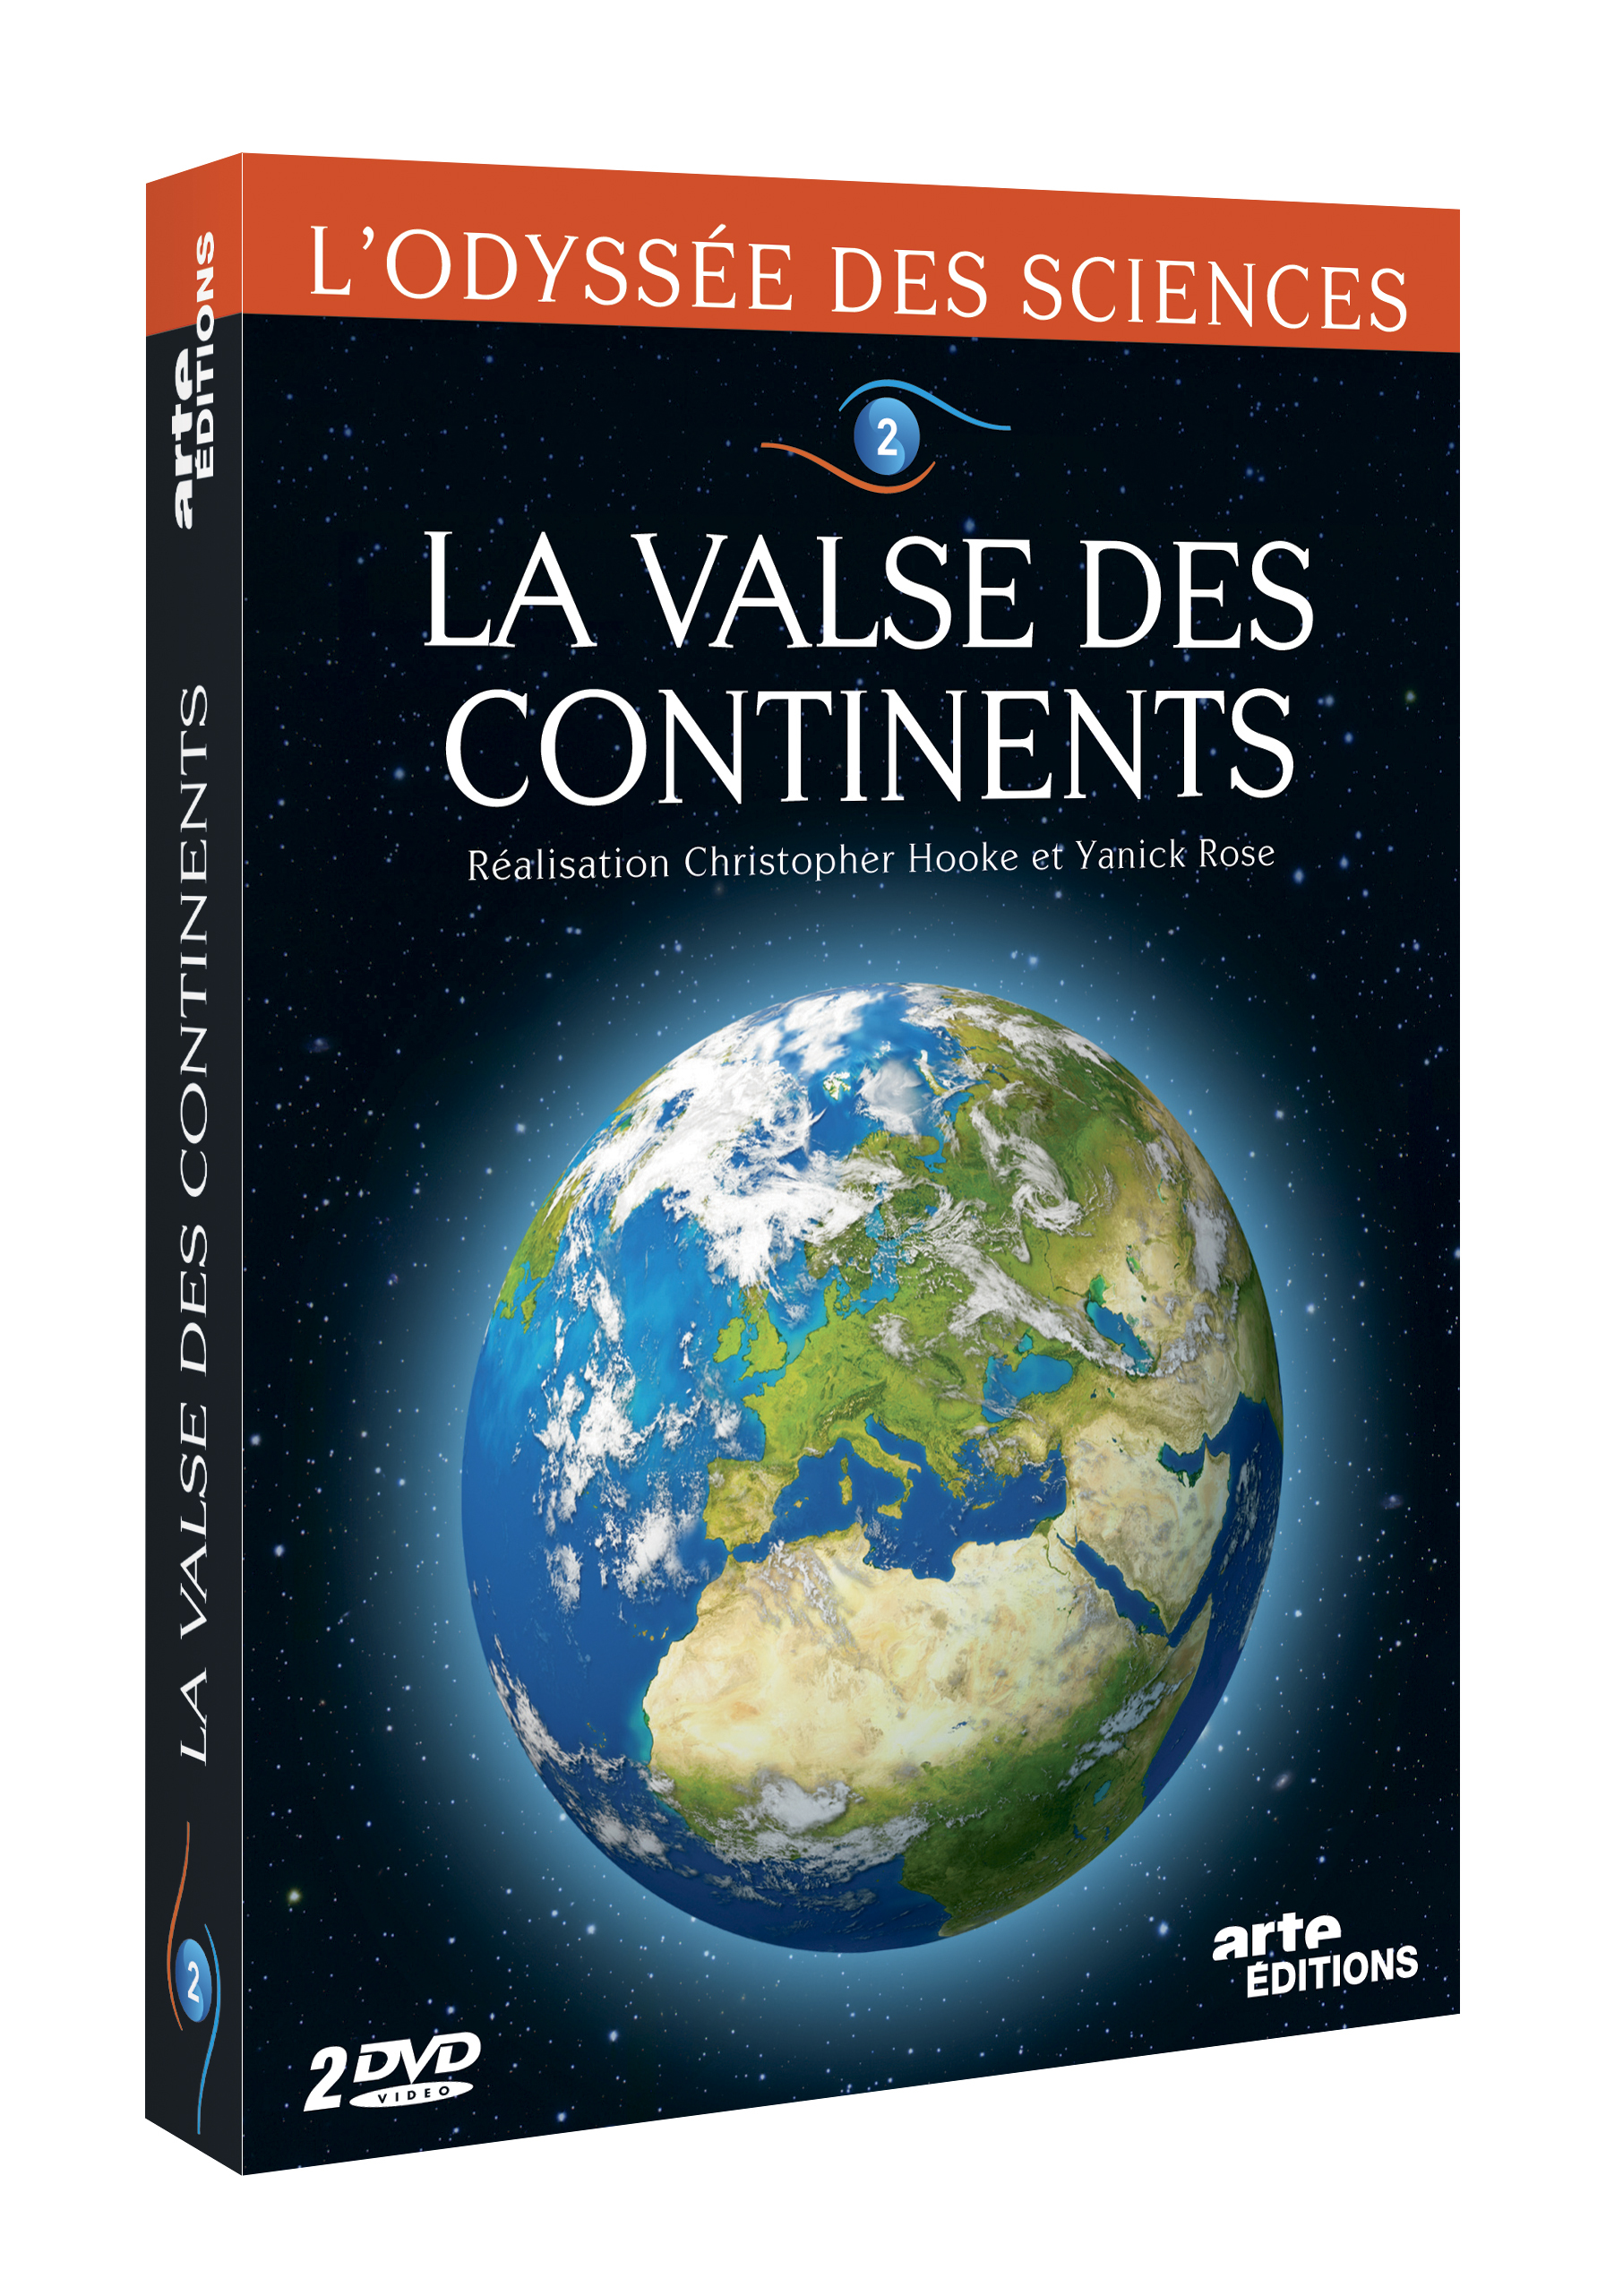 VALSE DES CONTINENTS - ODYSSEE DES SCIENCES V1 - 2 DVD